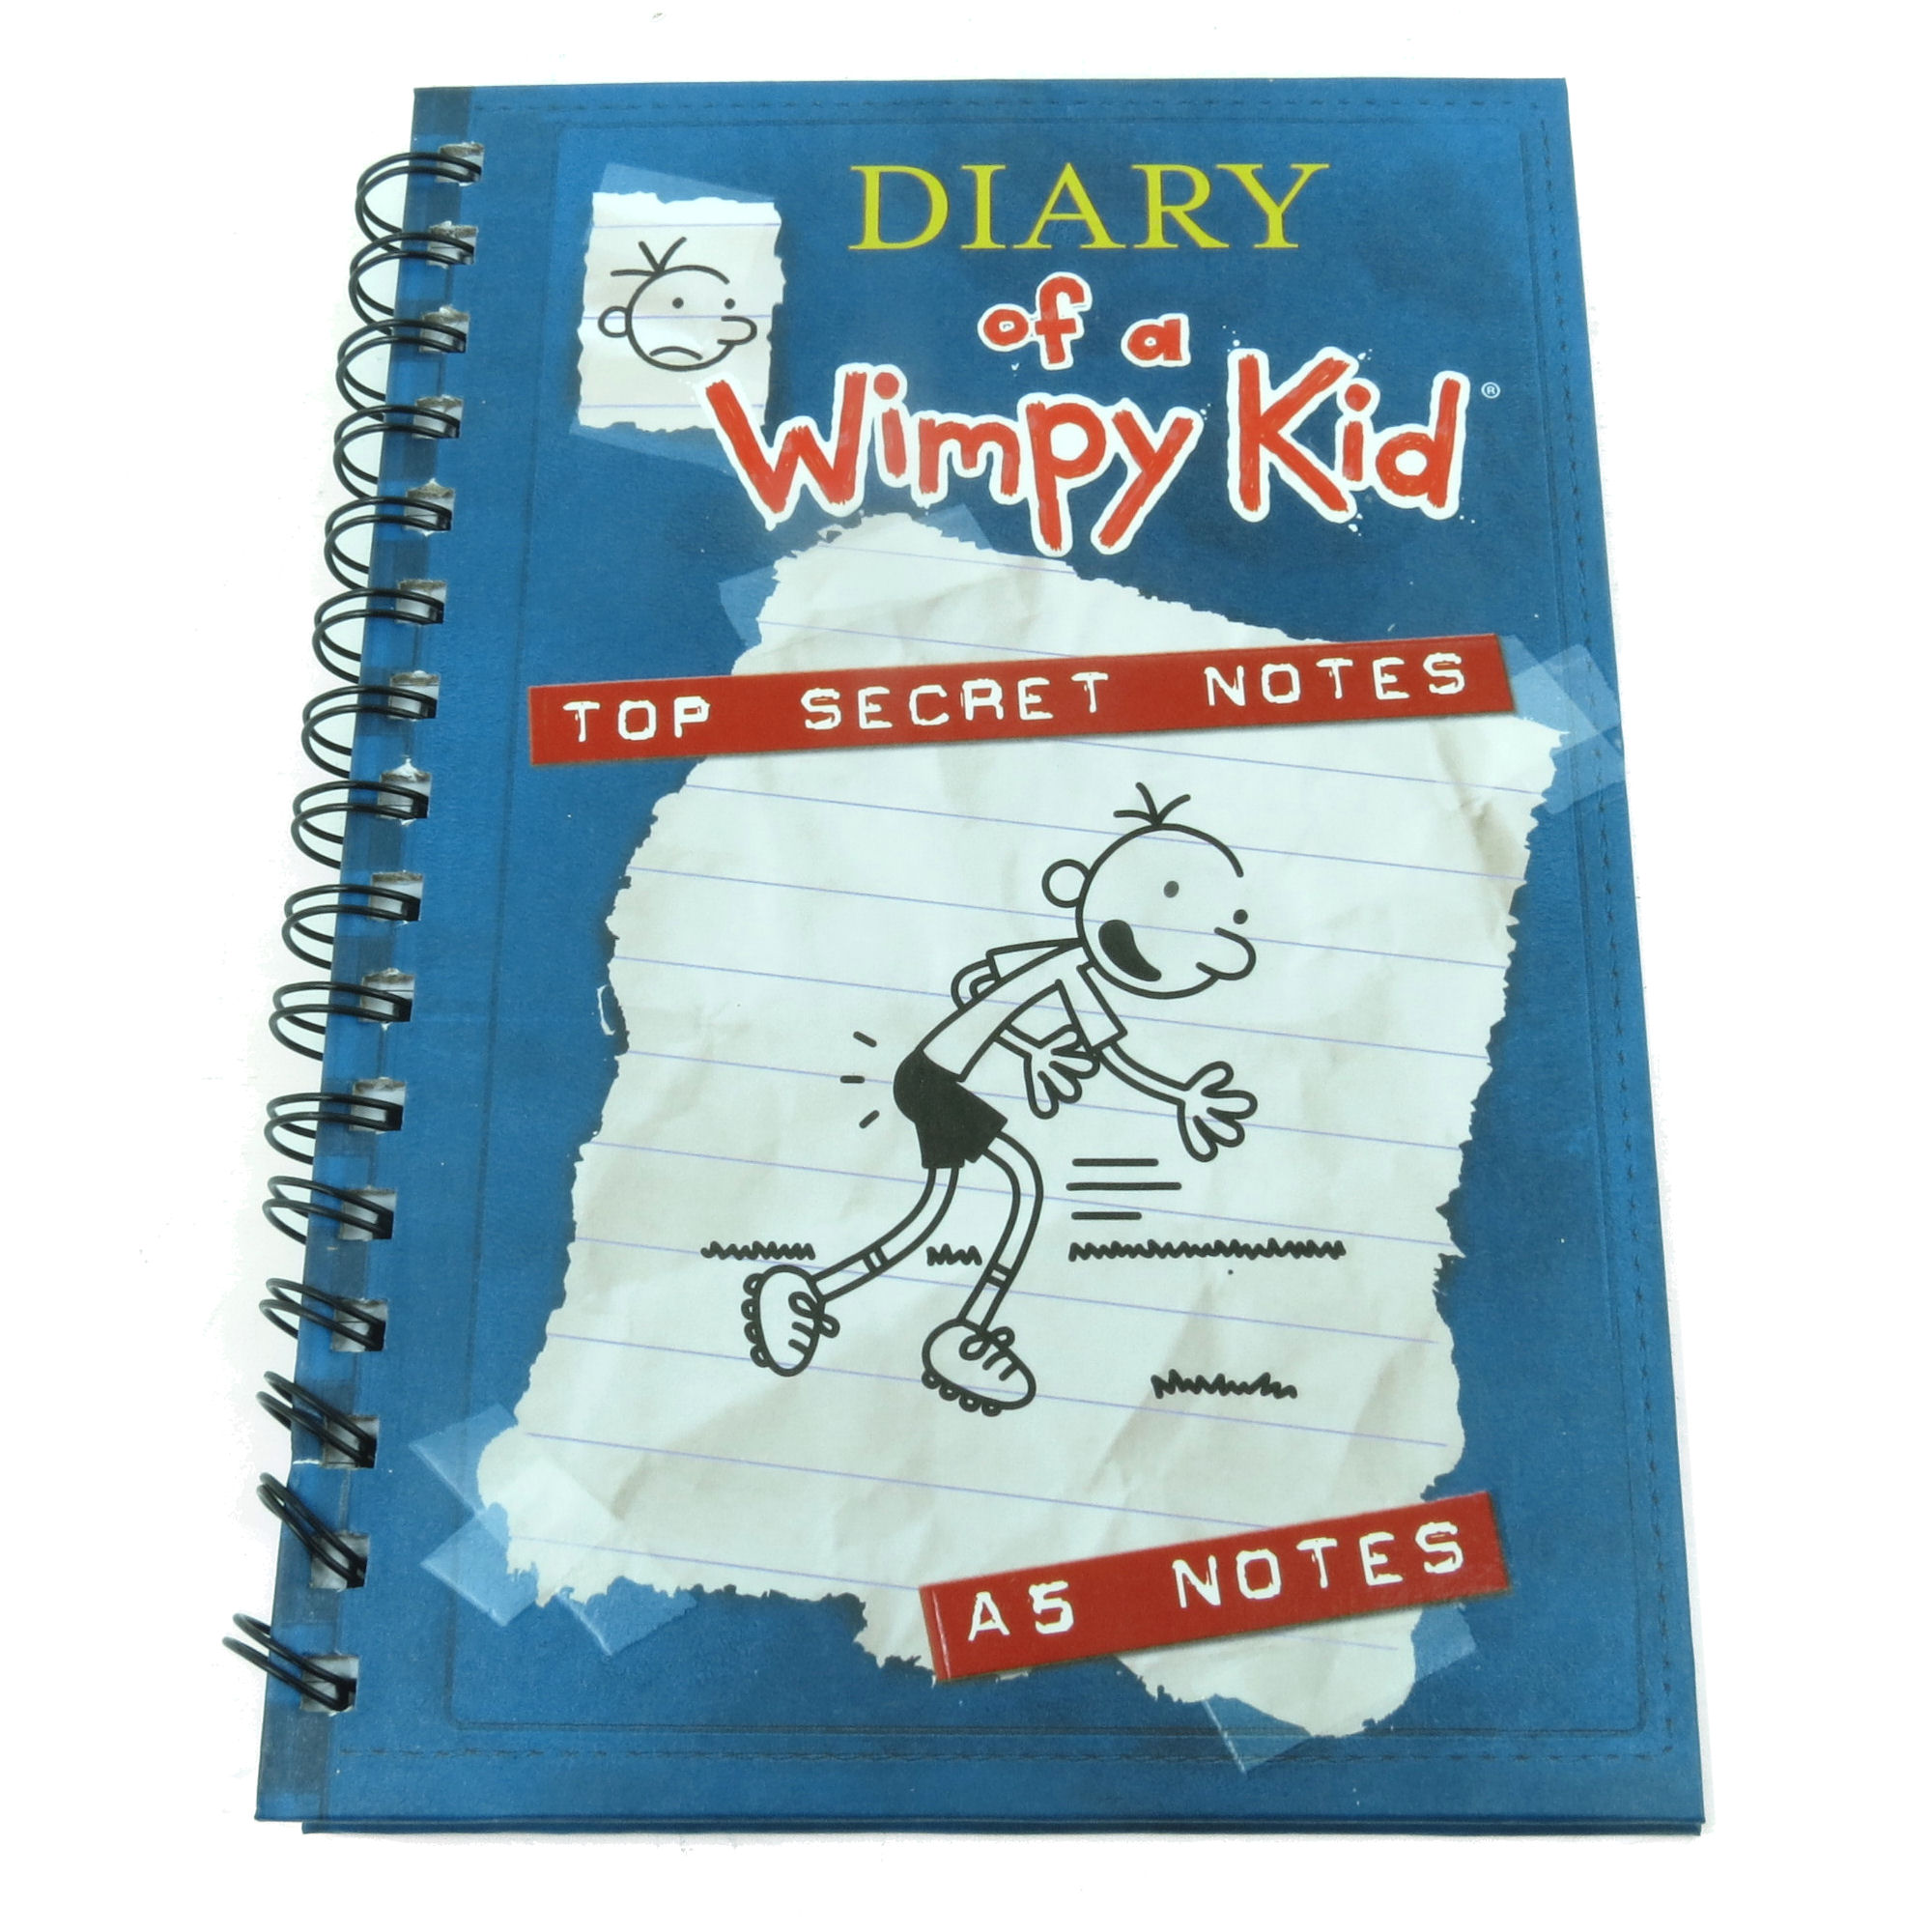 A5 diary of a wimpy kid hardback notebook journal lined paper pad a5 diary of a wimpy kid hardback notebook solutioingenieria Images